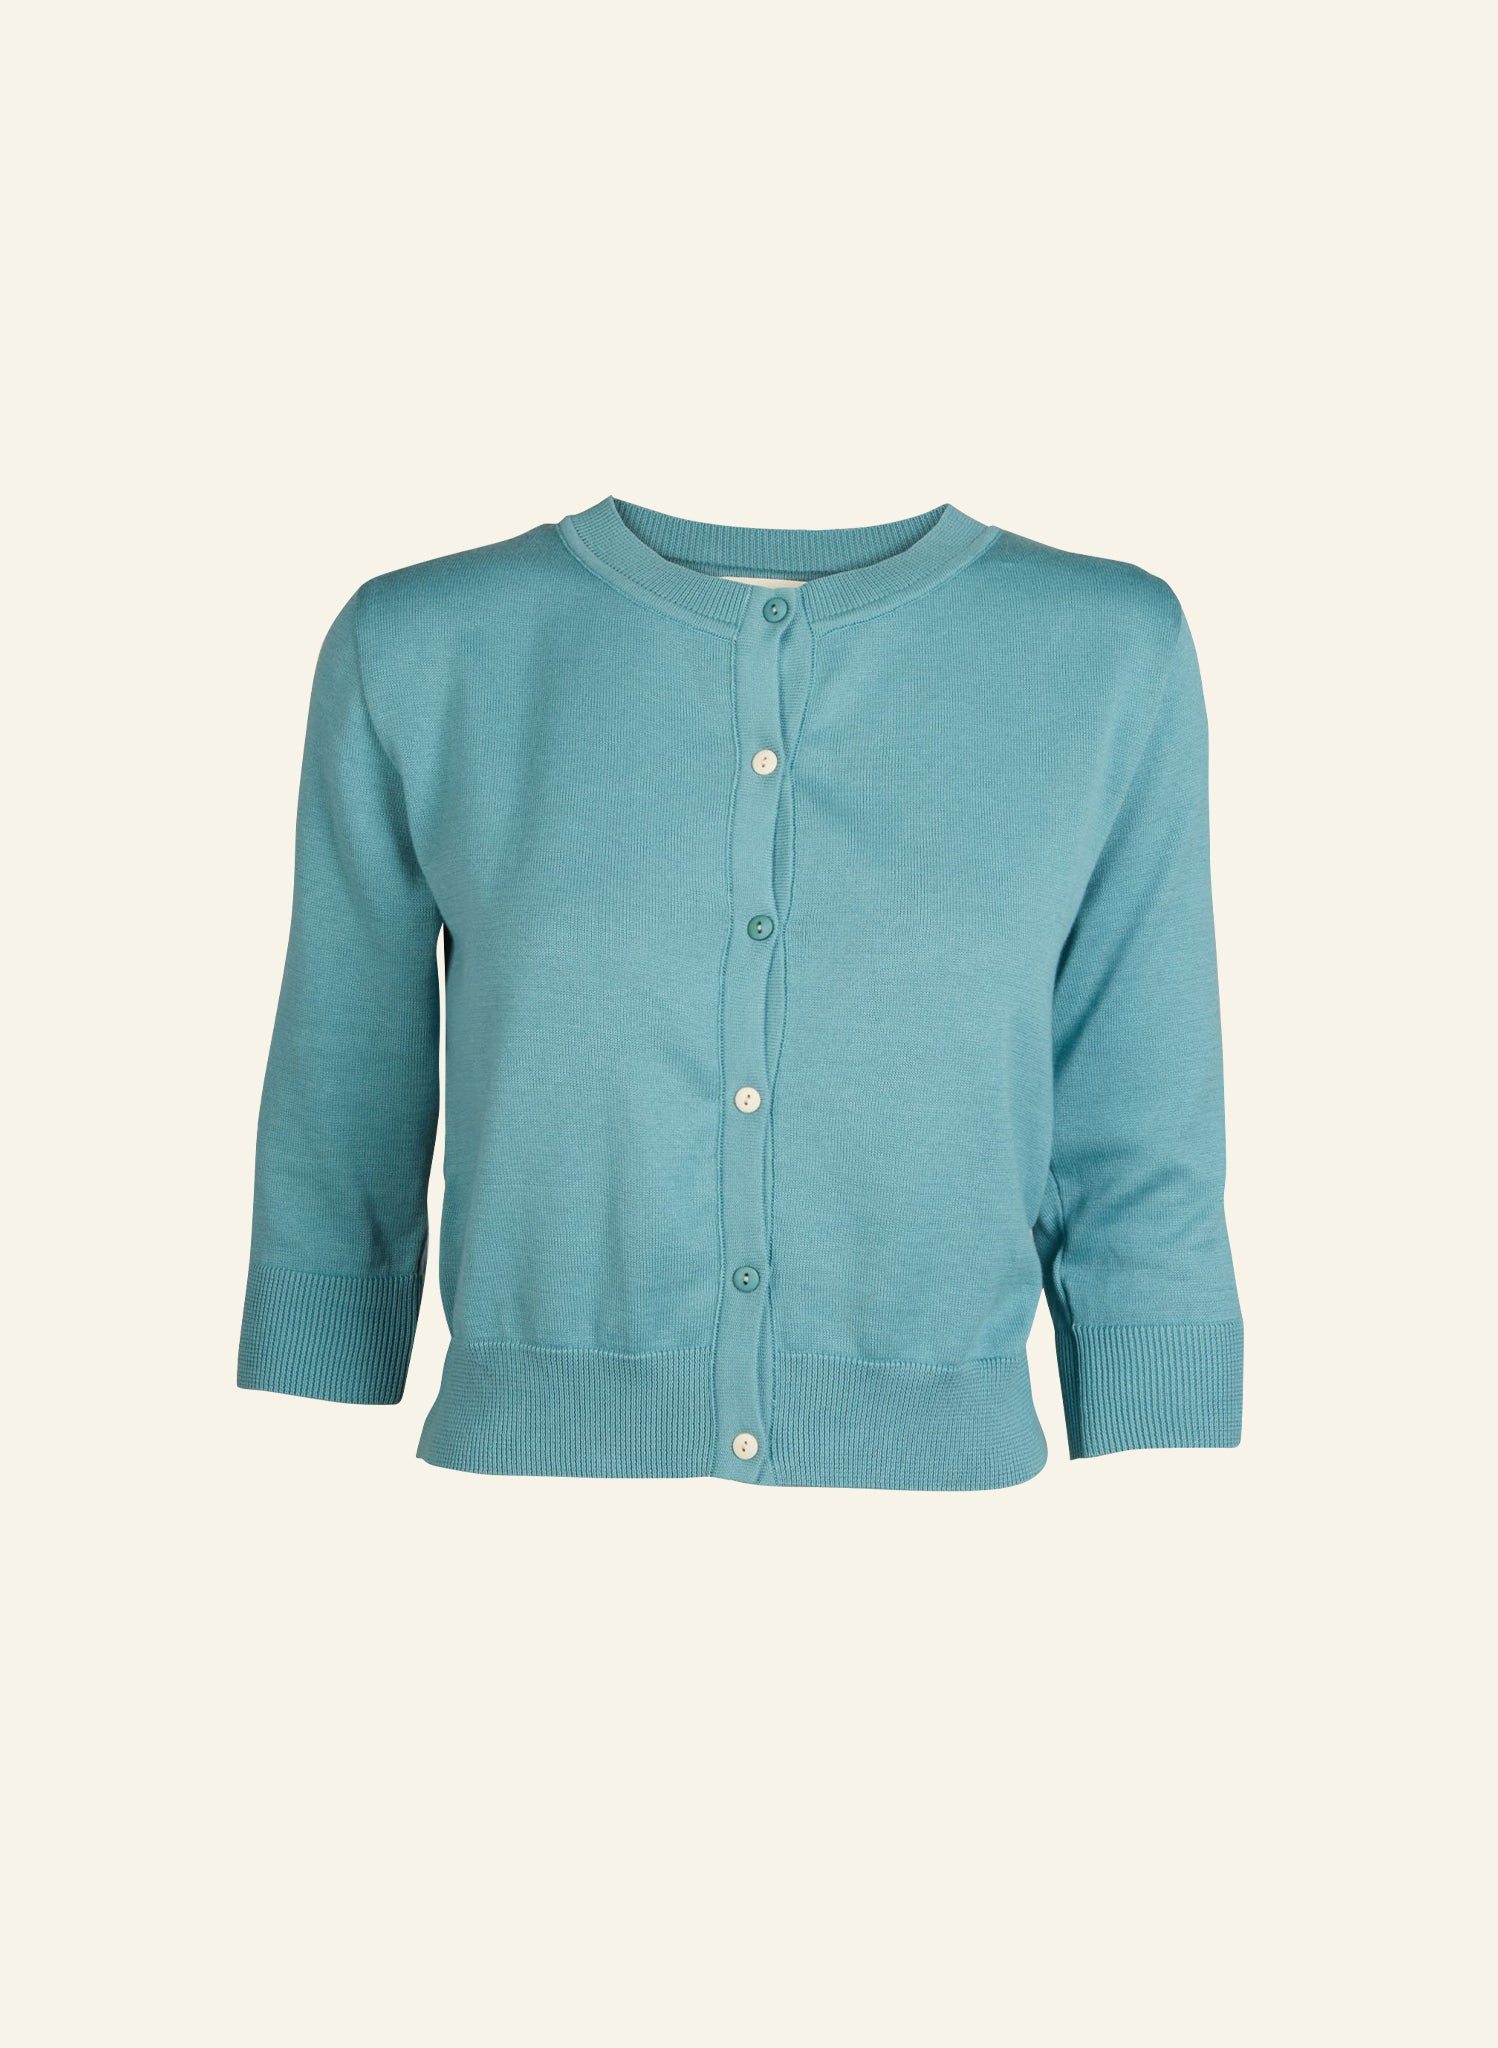 Vera - Teal - Organic Cotton Cardigan